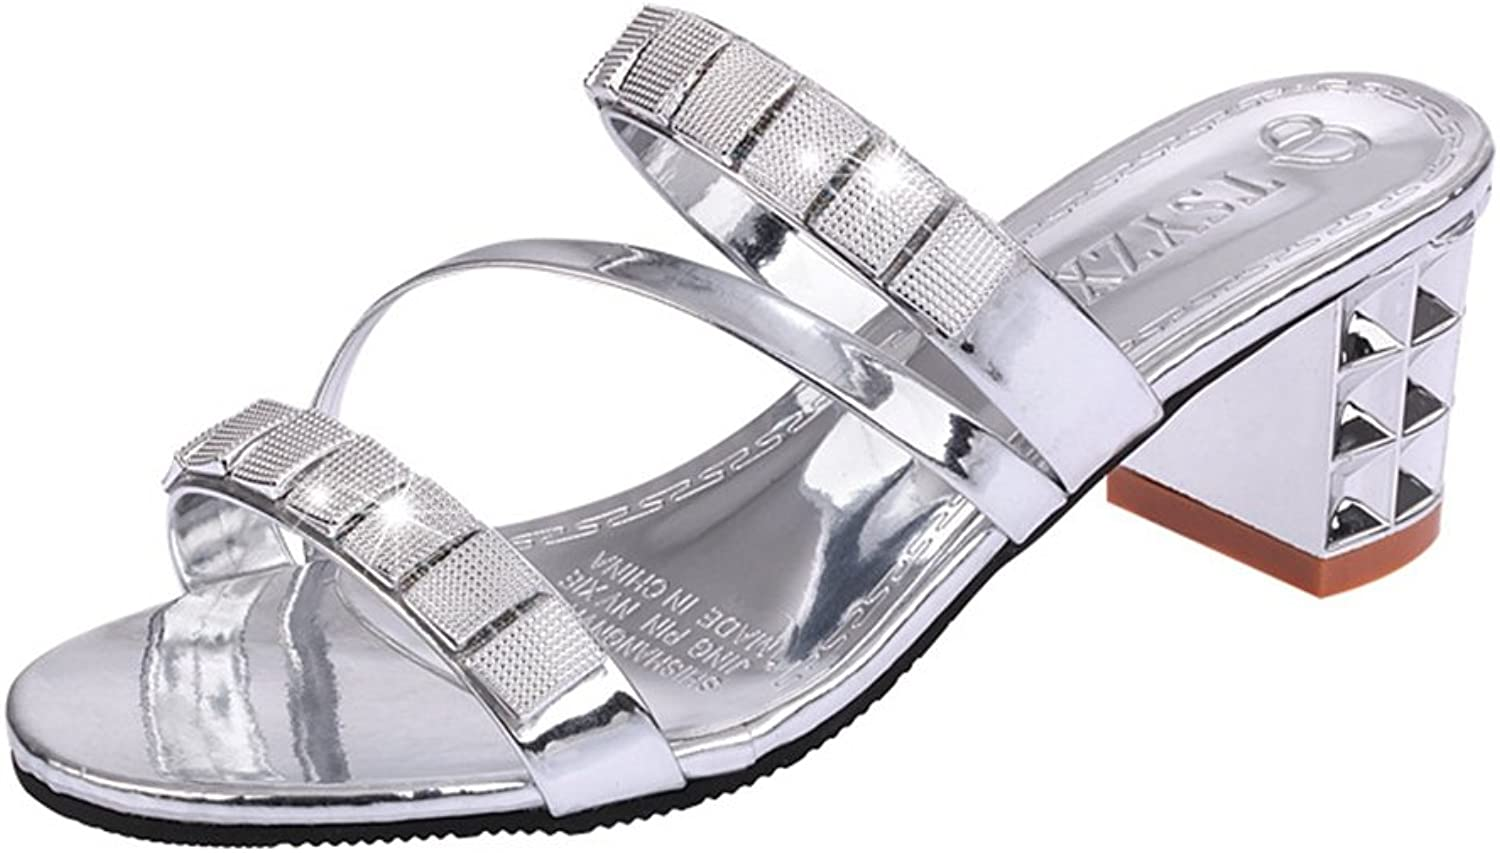 T -JULY kvinnor Ladies Crystal Rhinestone Beaded Beaded Beaded Sandals Hollowed Out Water Drill Slippers bröllop Party Evening Slippers  100% autentisk